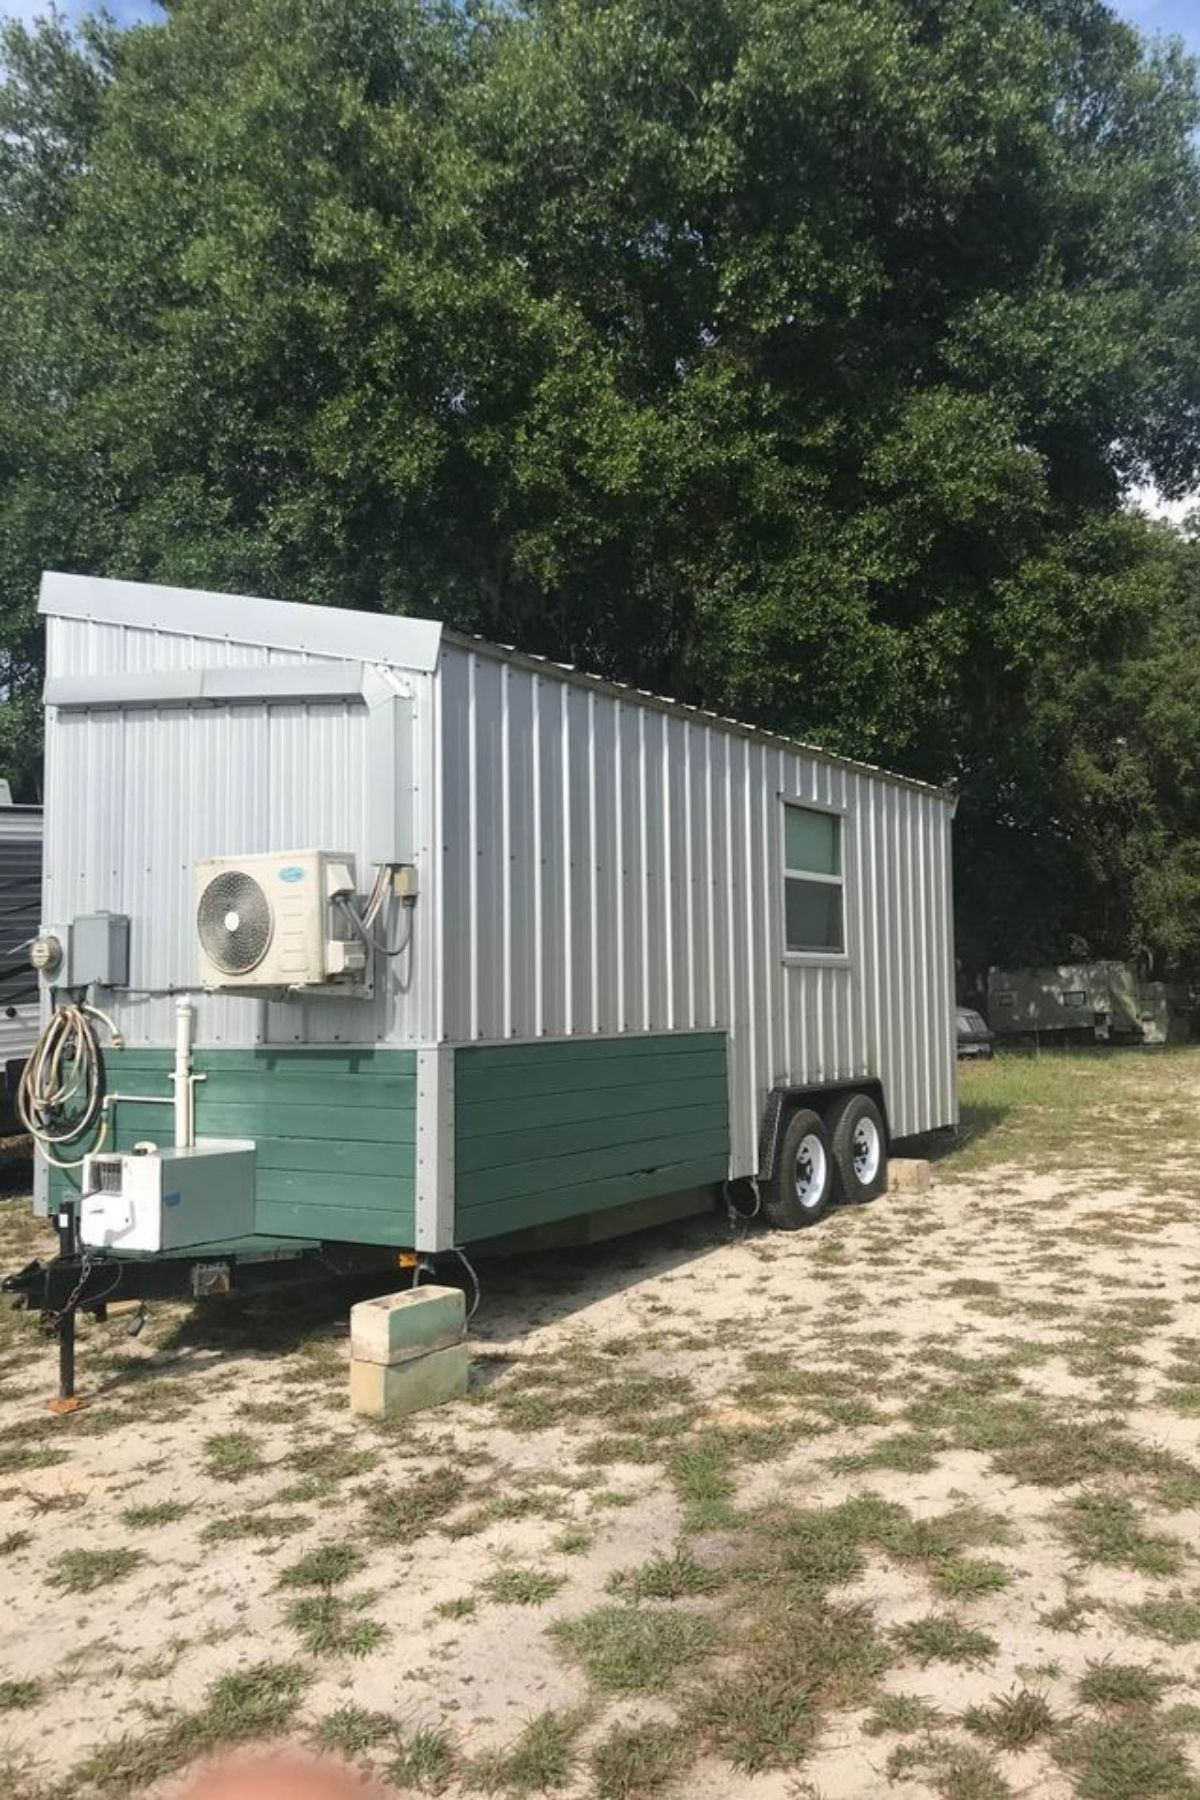 Back side of white and green tiny house on grassy lot